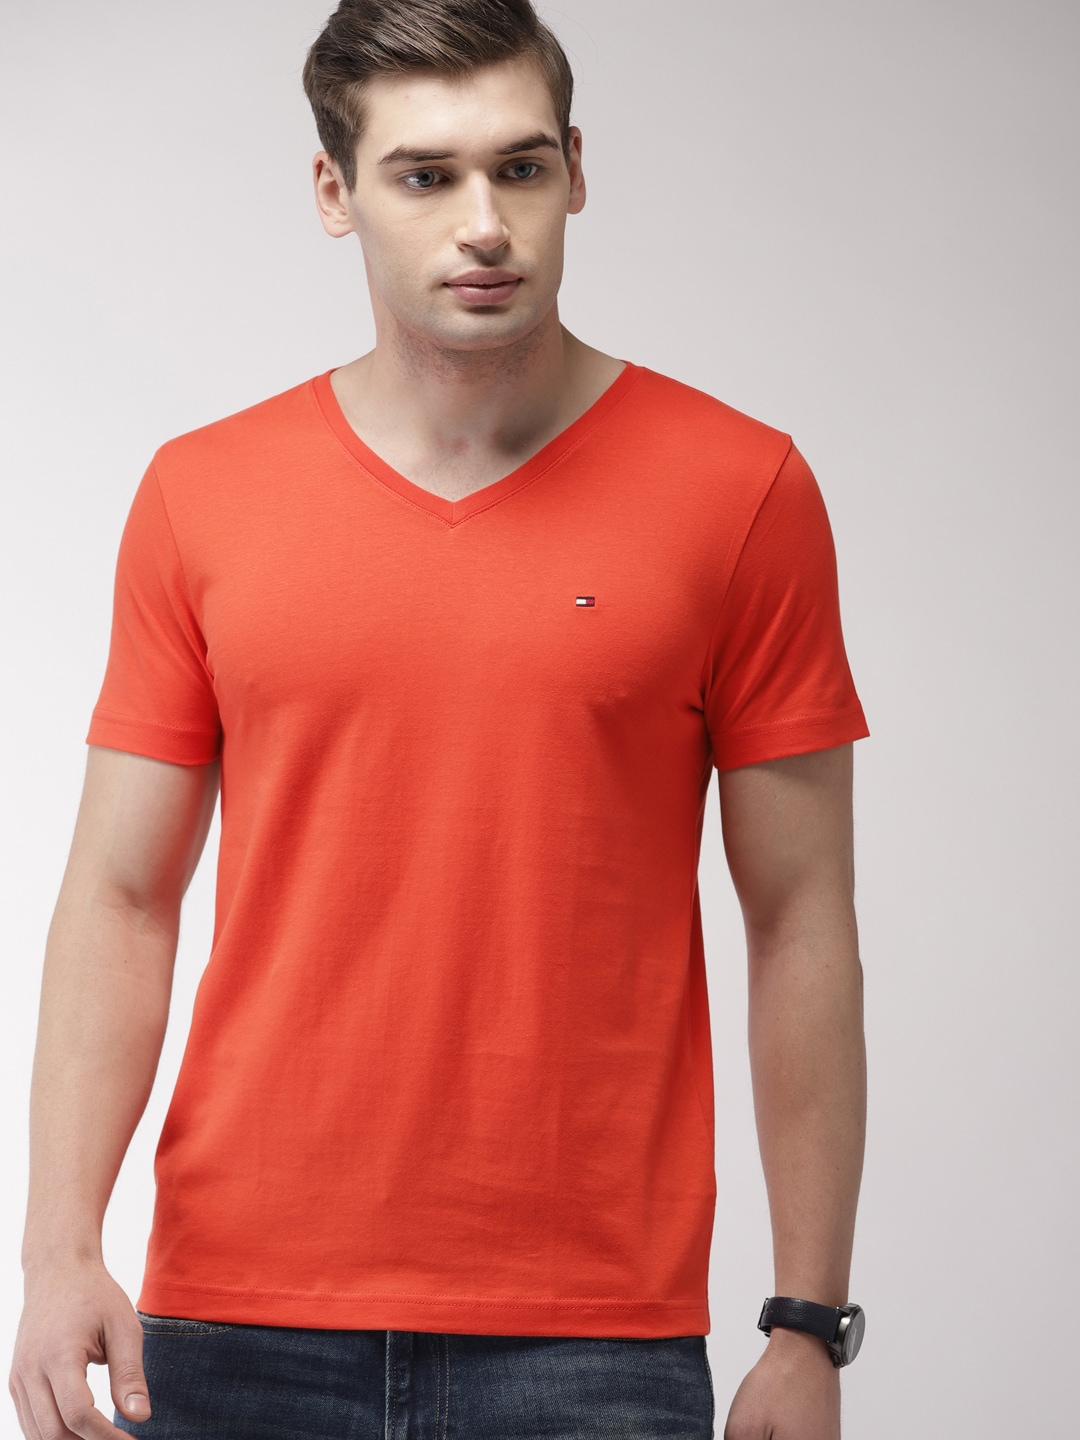 a3193f282 Men T-shirts - Buy T-shirt for Men Online in India | Myntra